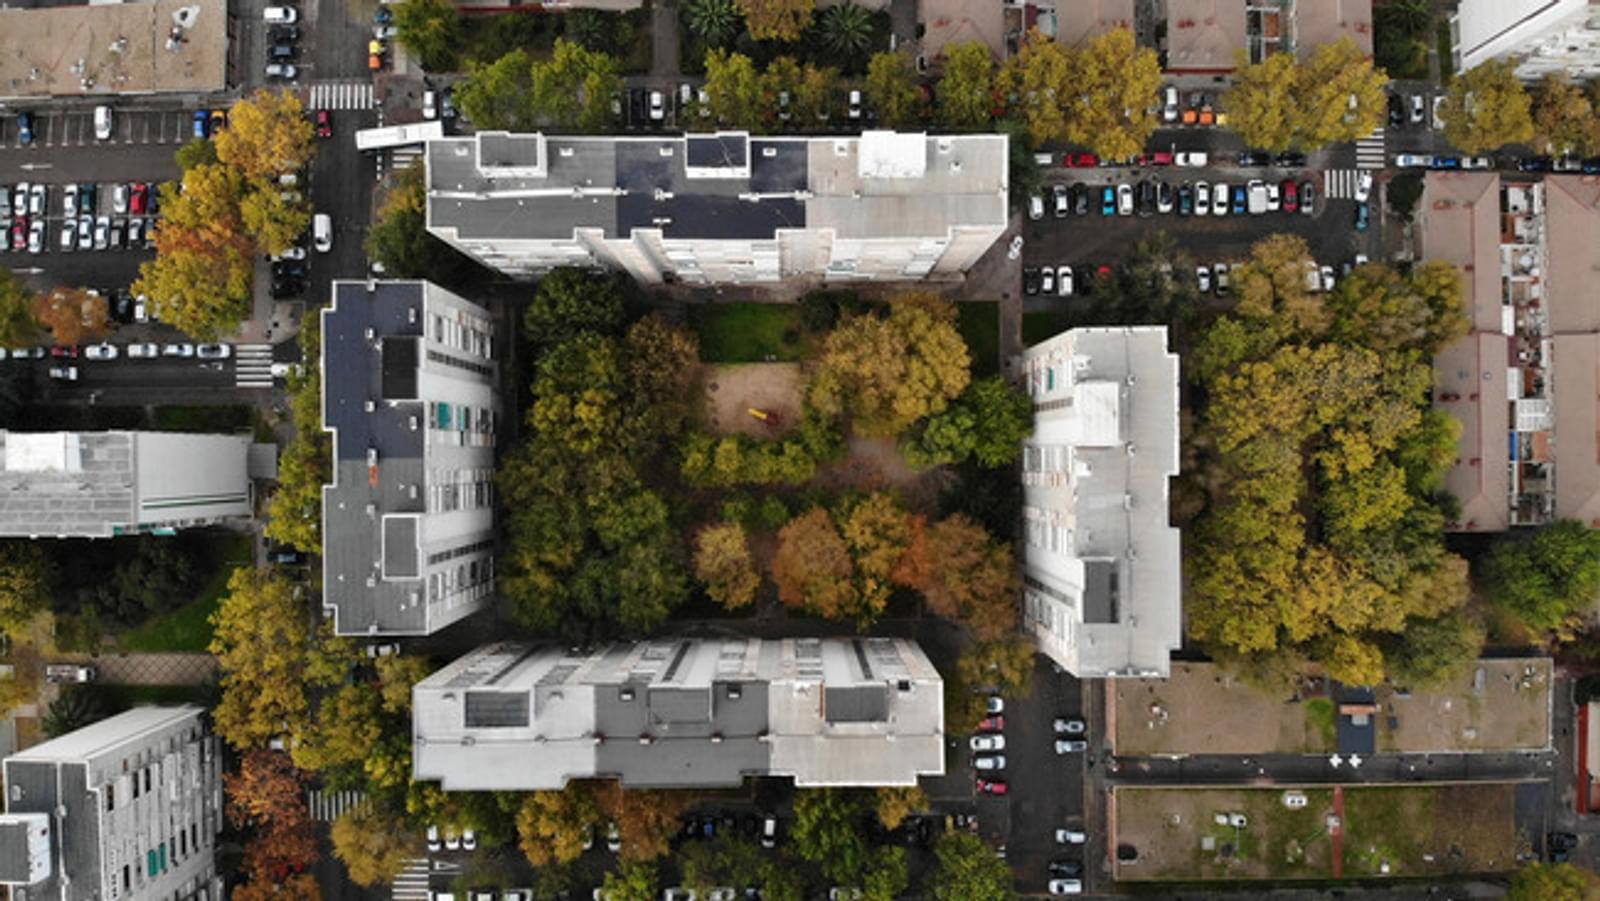 birds eye view of a hospital building